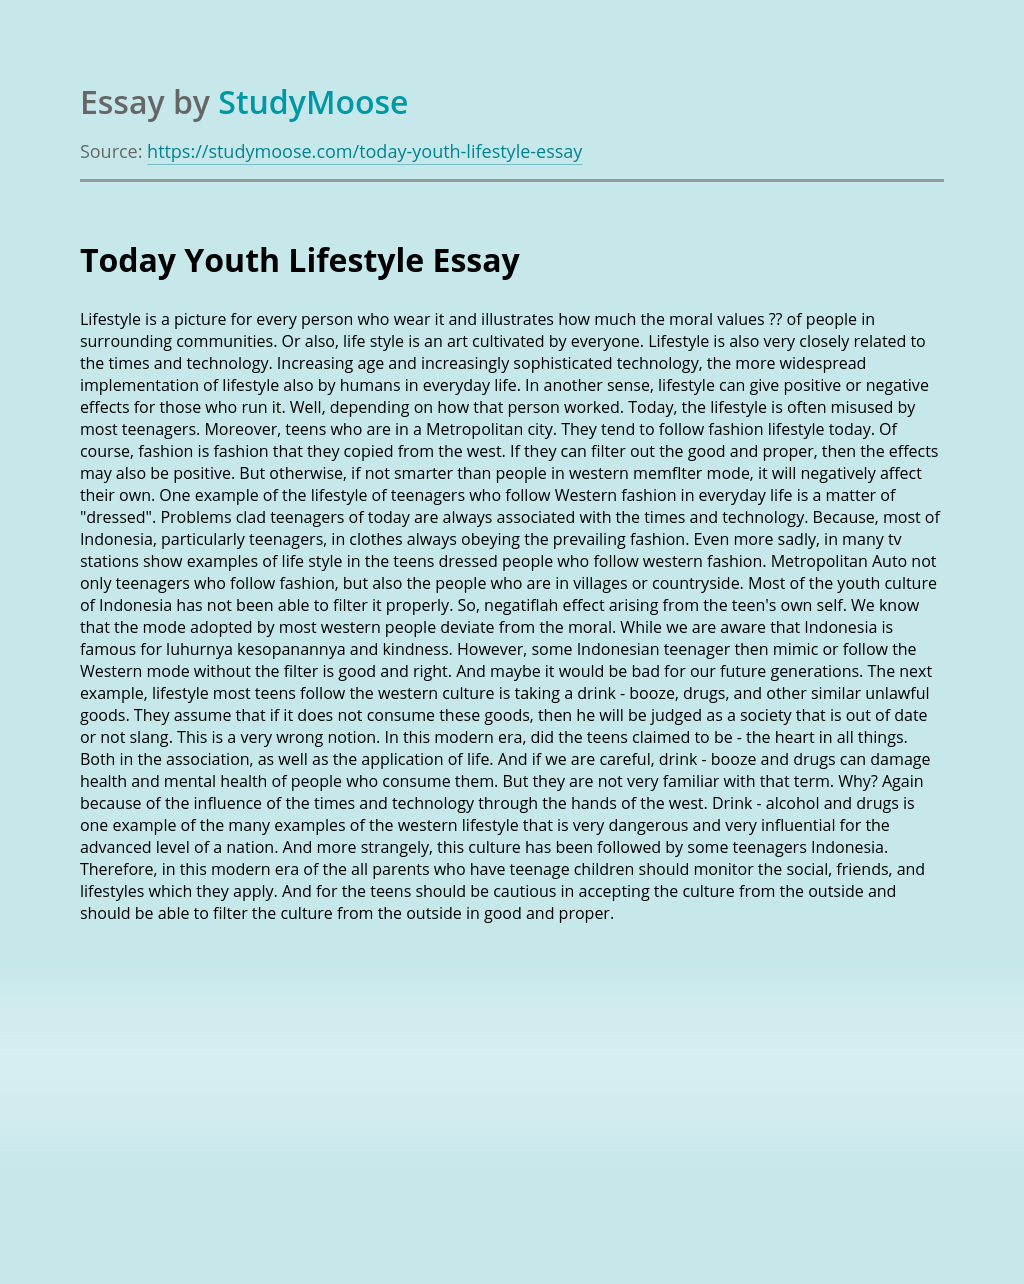 Today Youth Lifestyle